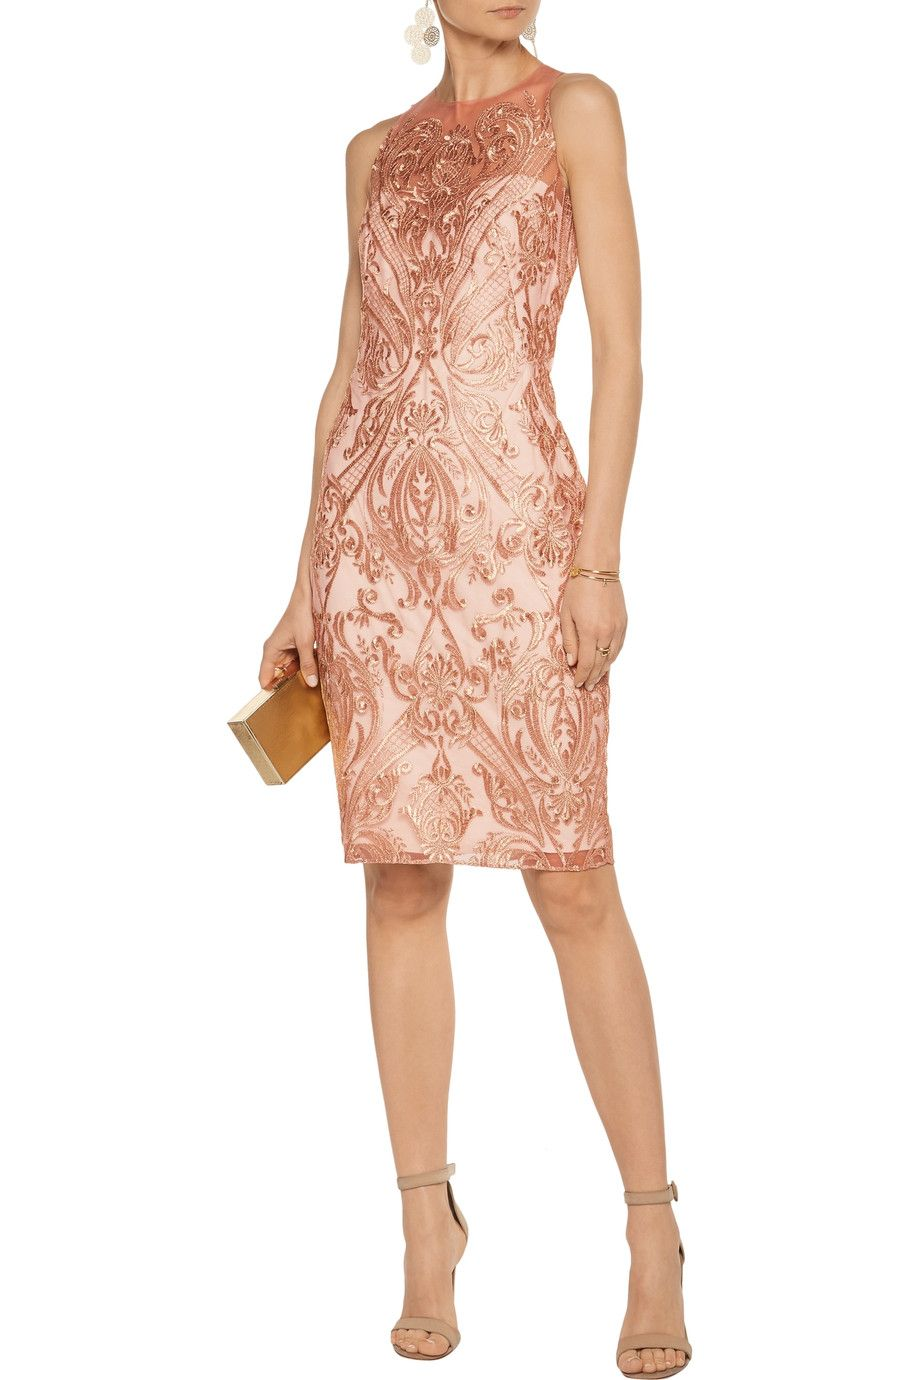 Shop on-sale Marchesa Notte Metallic embroidered tulle dress. Browse other  discount designer Dresses